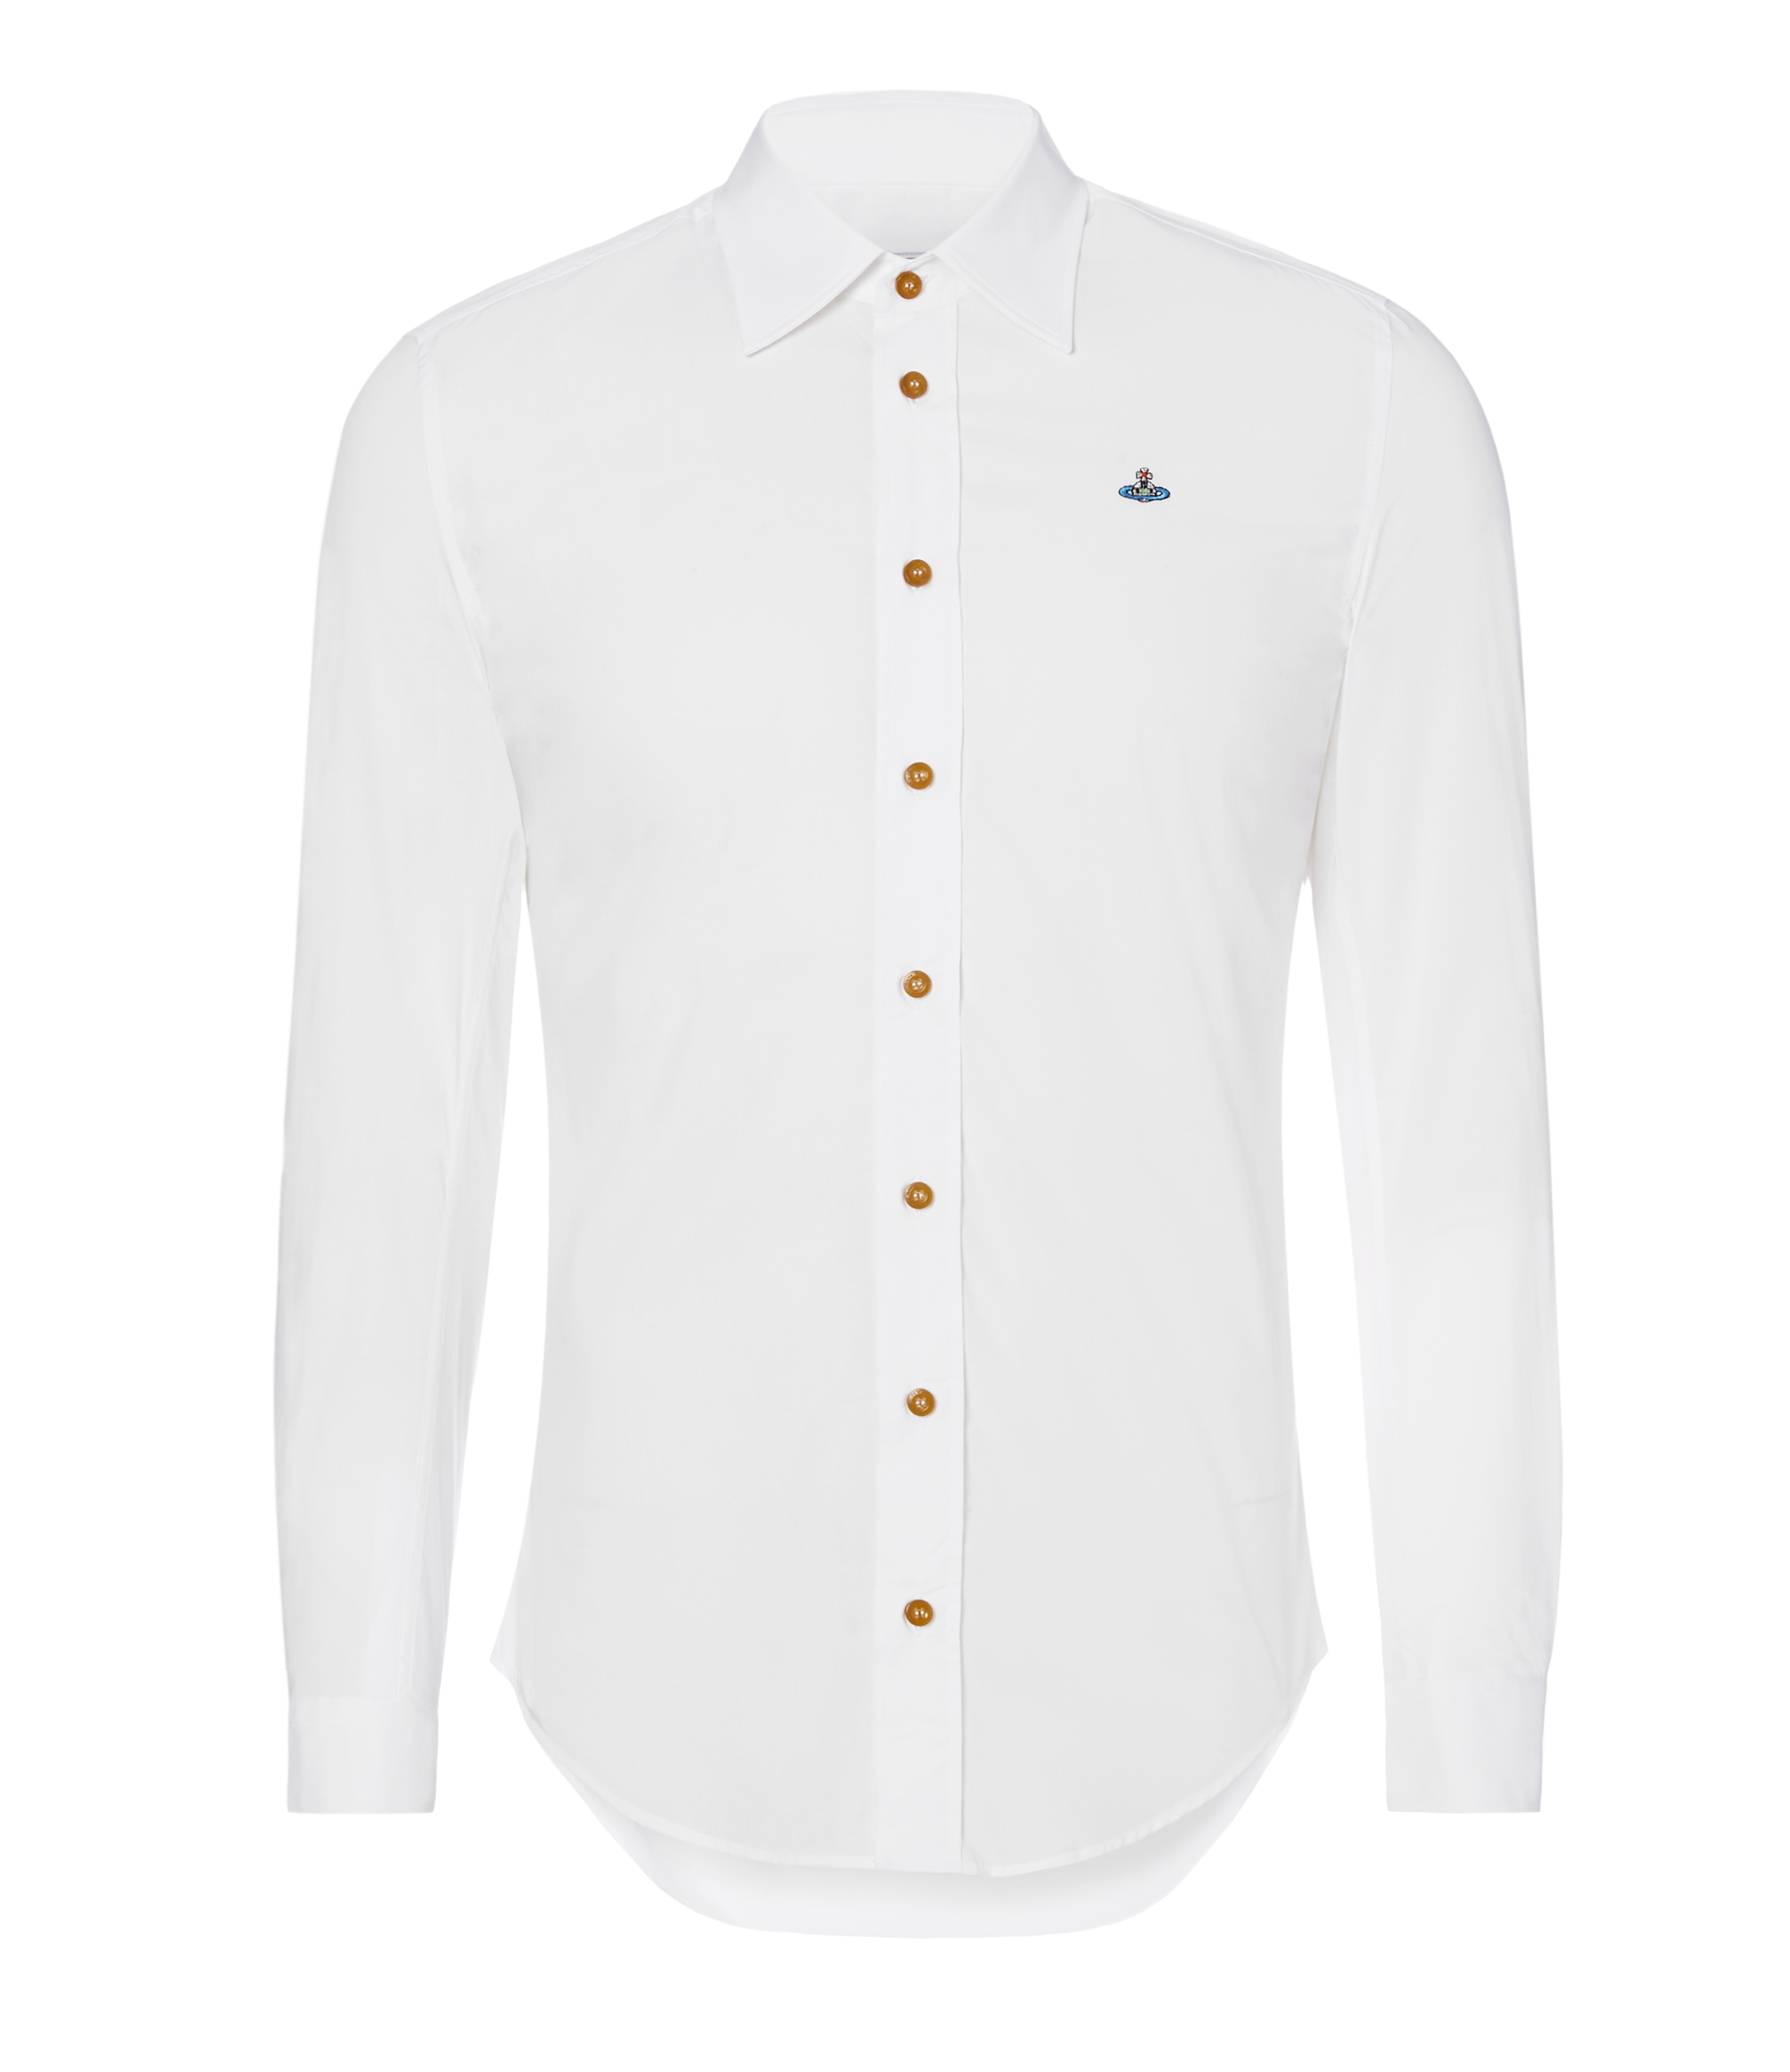 Vivienne Westwood Classic Stretch Shirt White